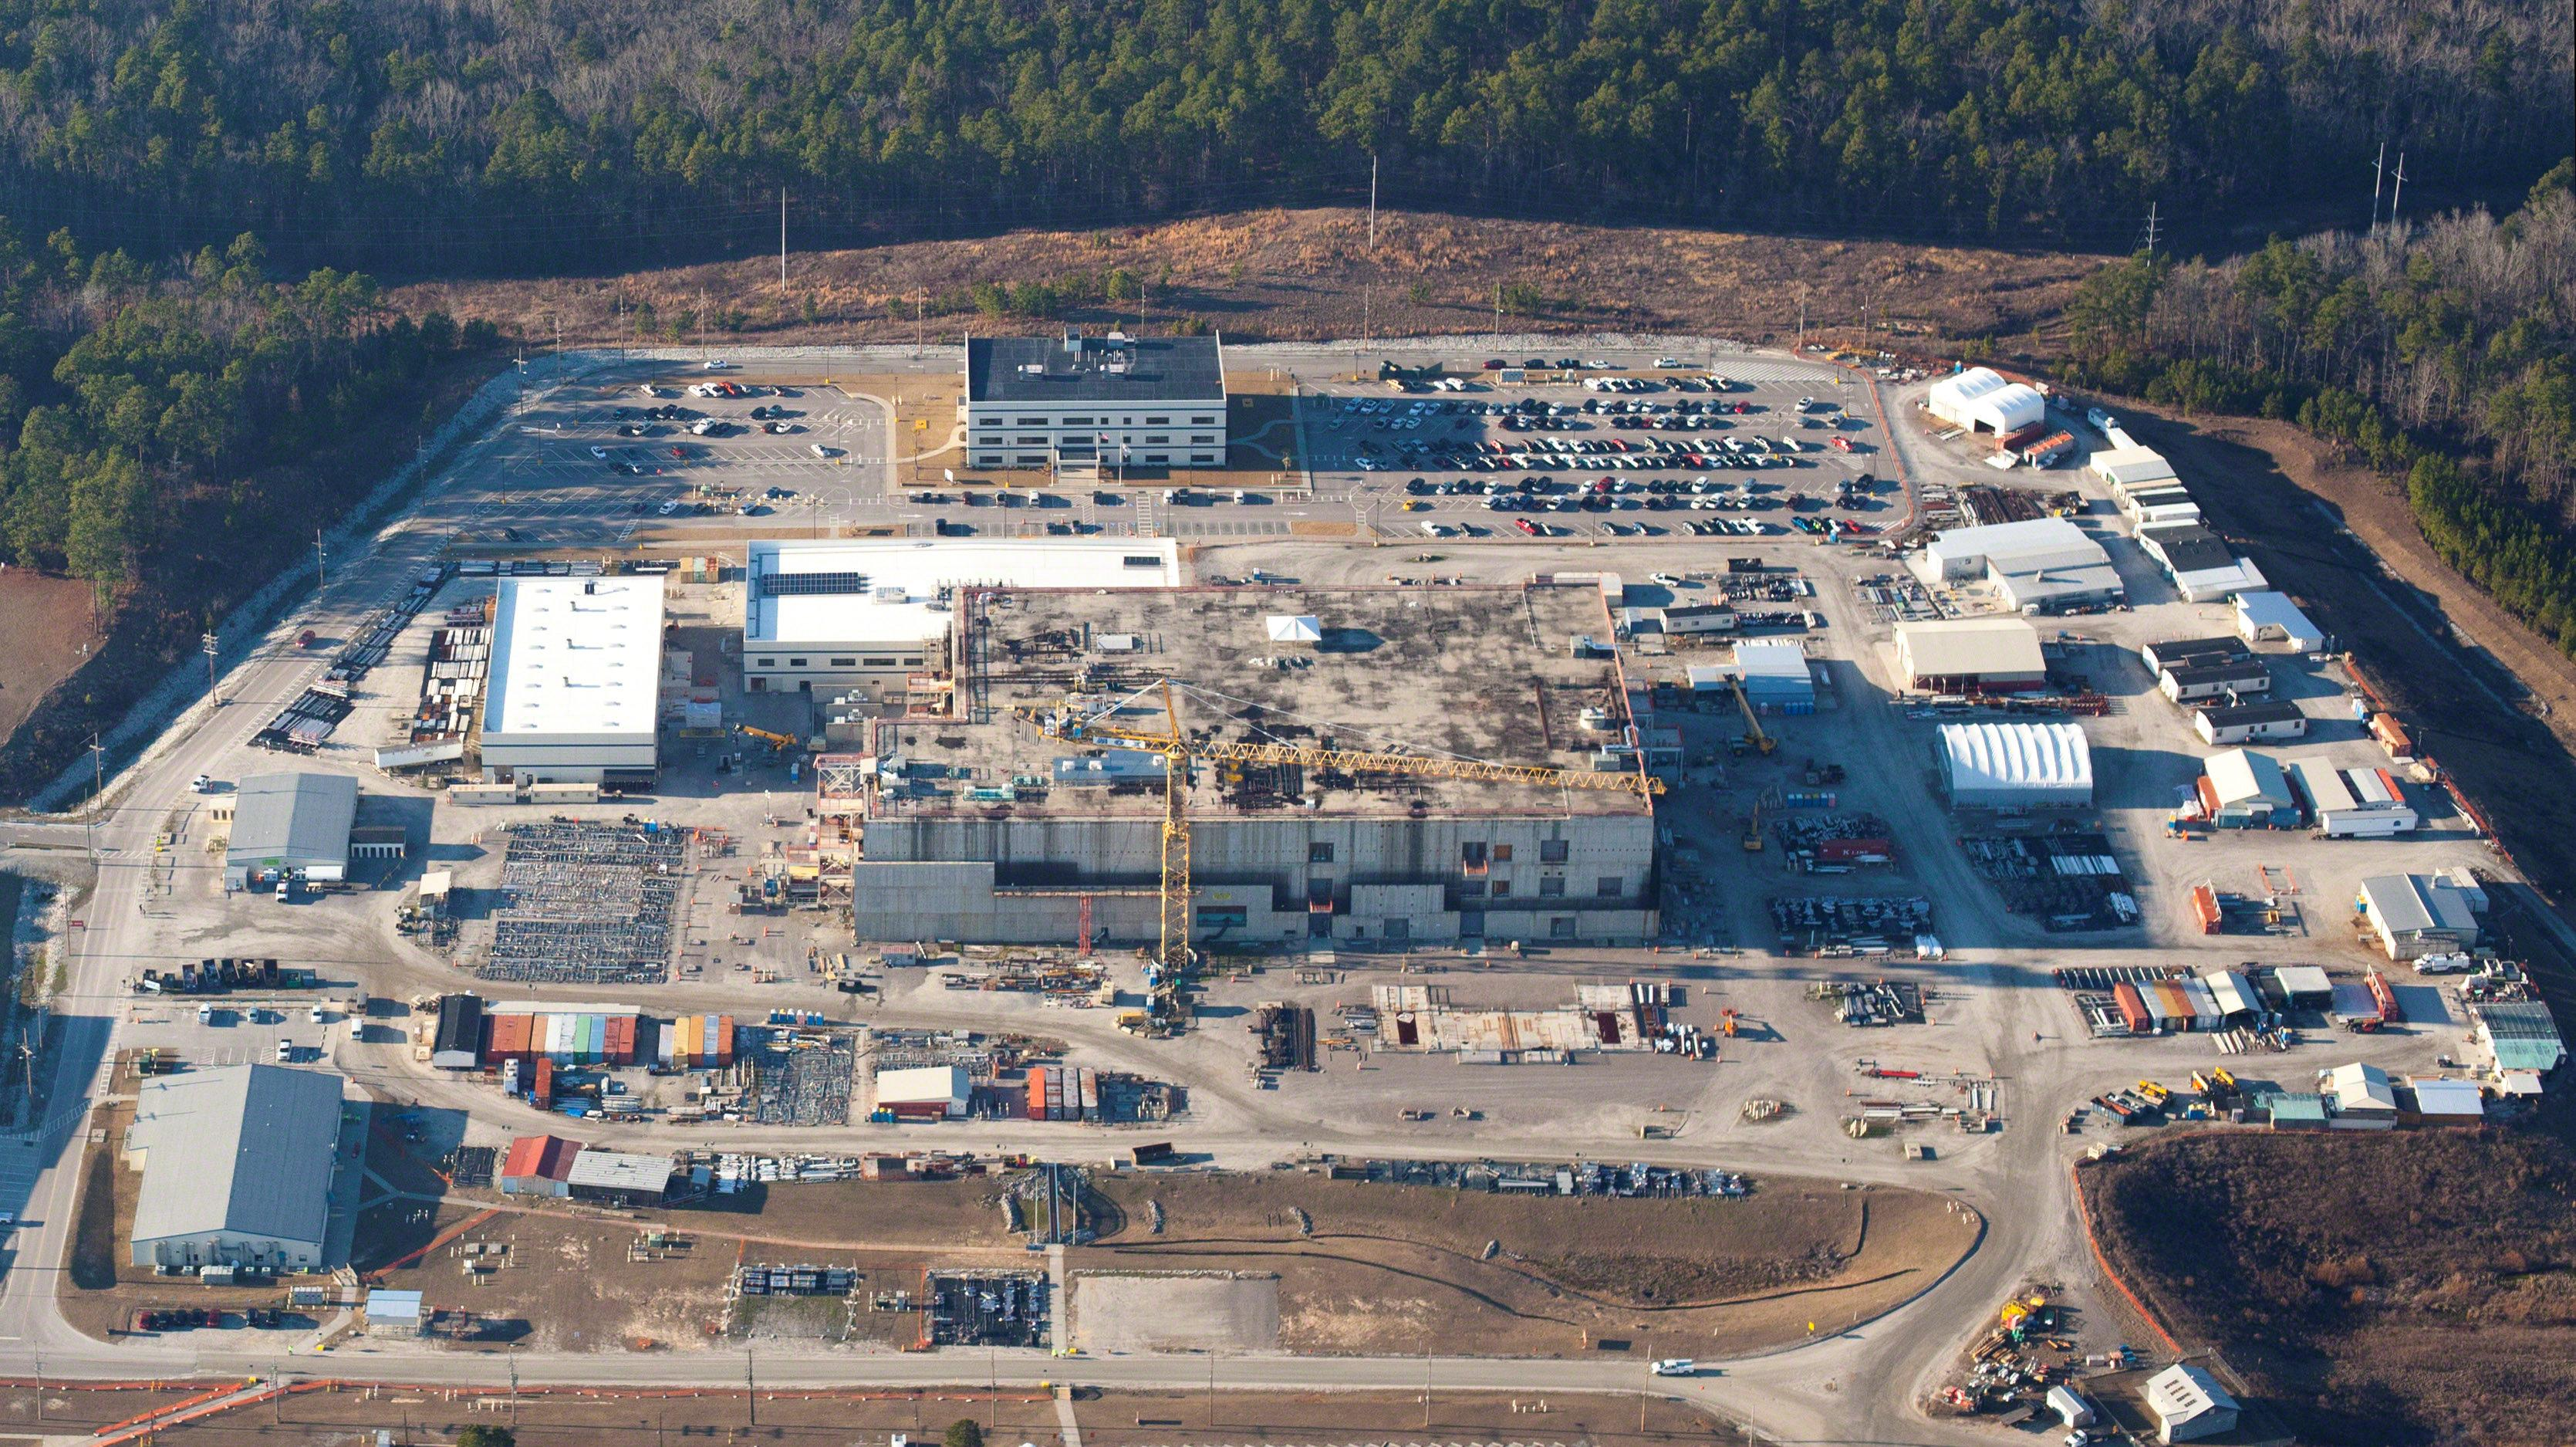 The U.S. Energy Department's Savannah River Site, with the unfinished building which was meant to make plutonium safe but now may not be finished until 2048, is seen in this aerial image, taken near Aiken, South Carolina, U. S. January 31, 2018.    High Flyer © 2018/Handout via